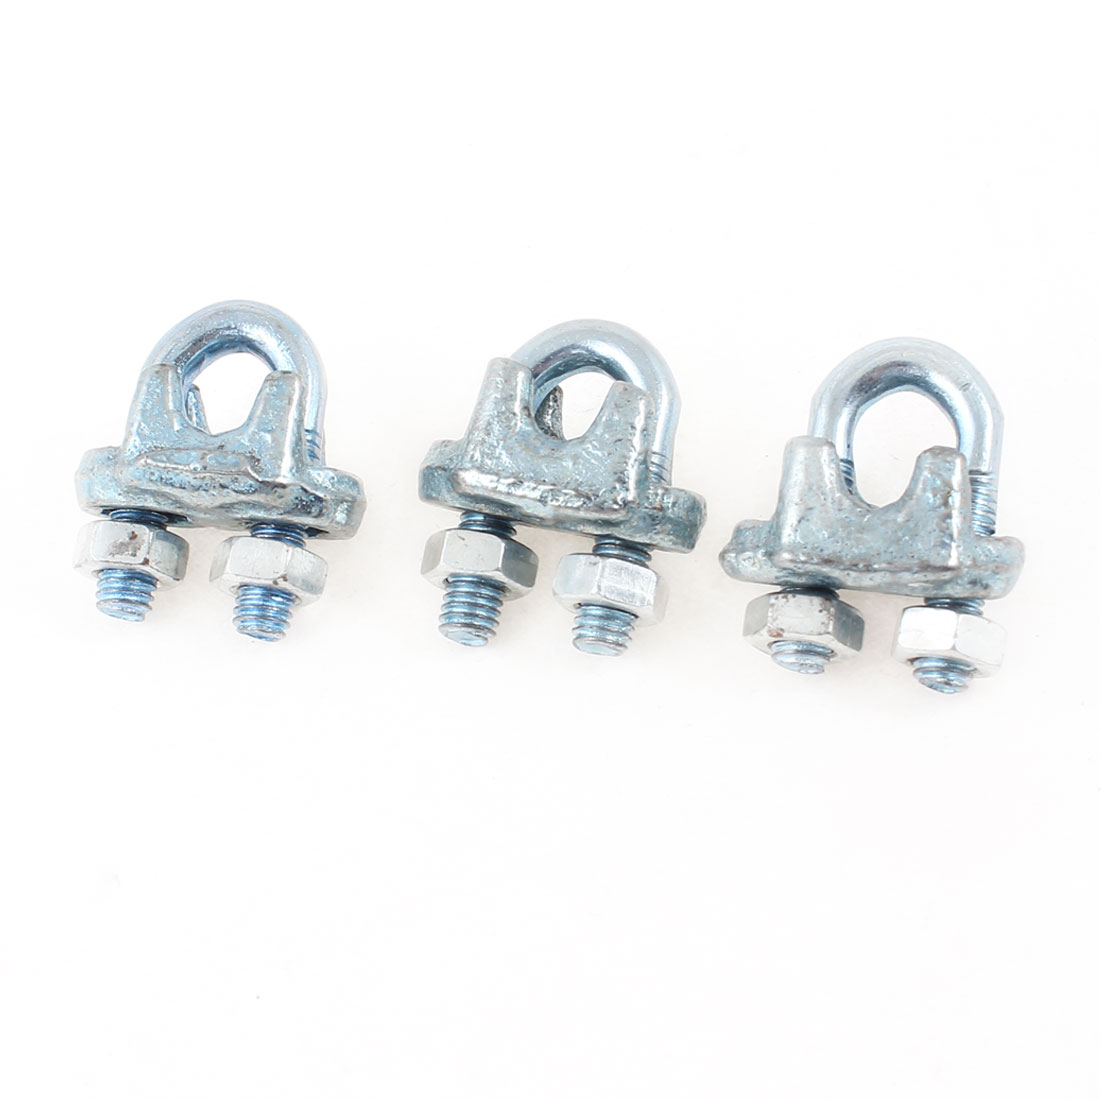 "3 Pcs Metal Wire Rope Cable Clips Clamps 1/5"" Silver Tone"